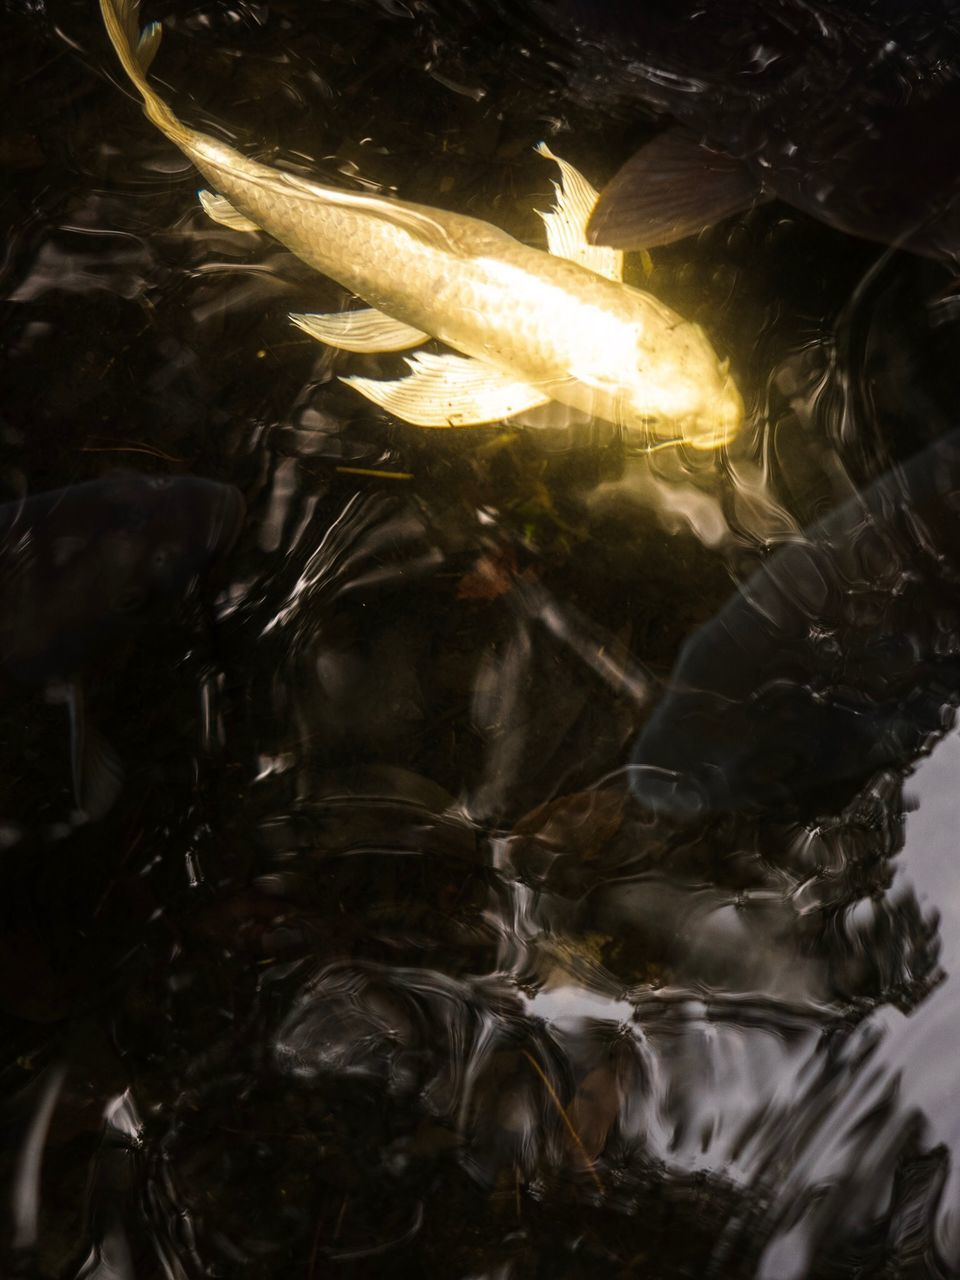 HIGH ANGLE VIEW OF FISH IN GLASS